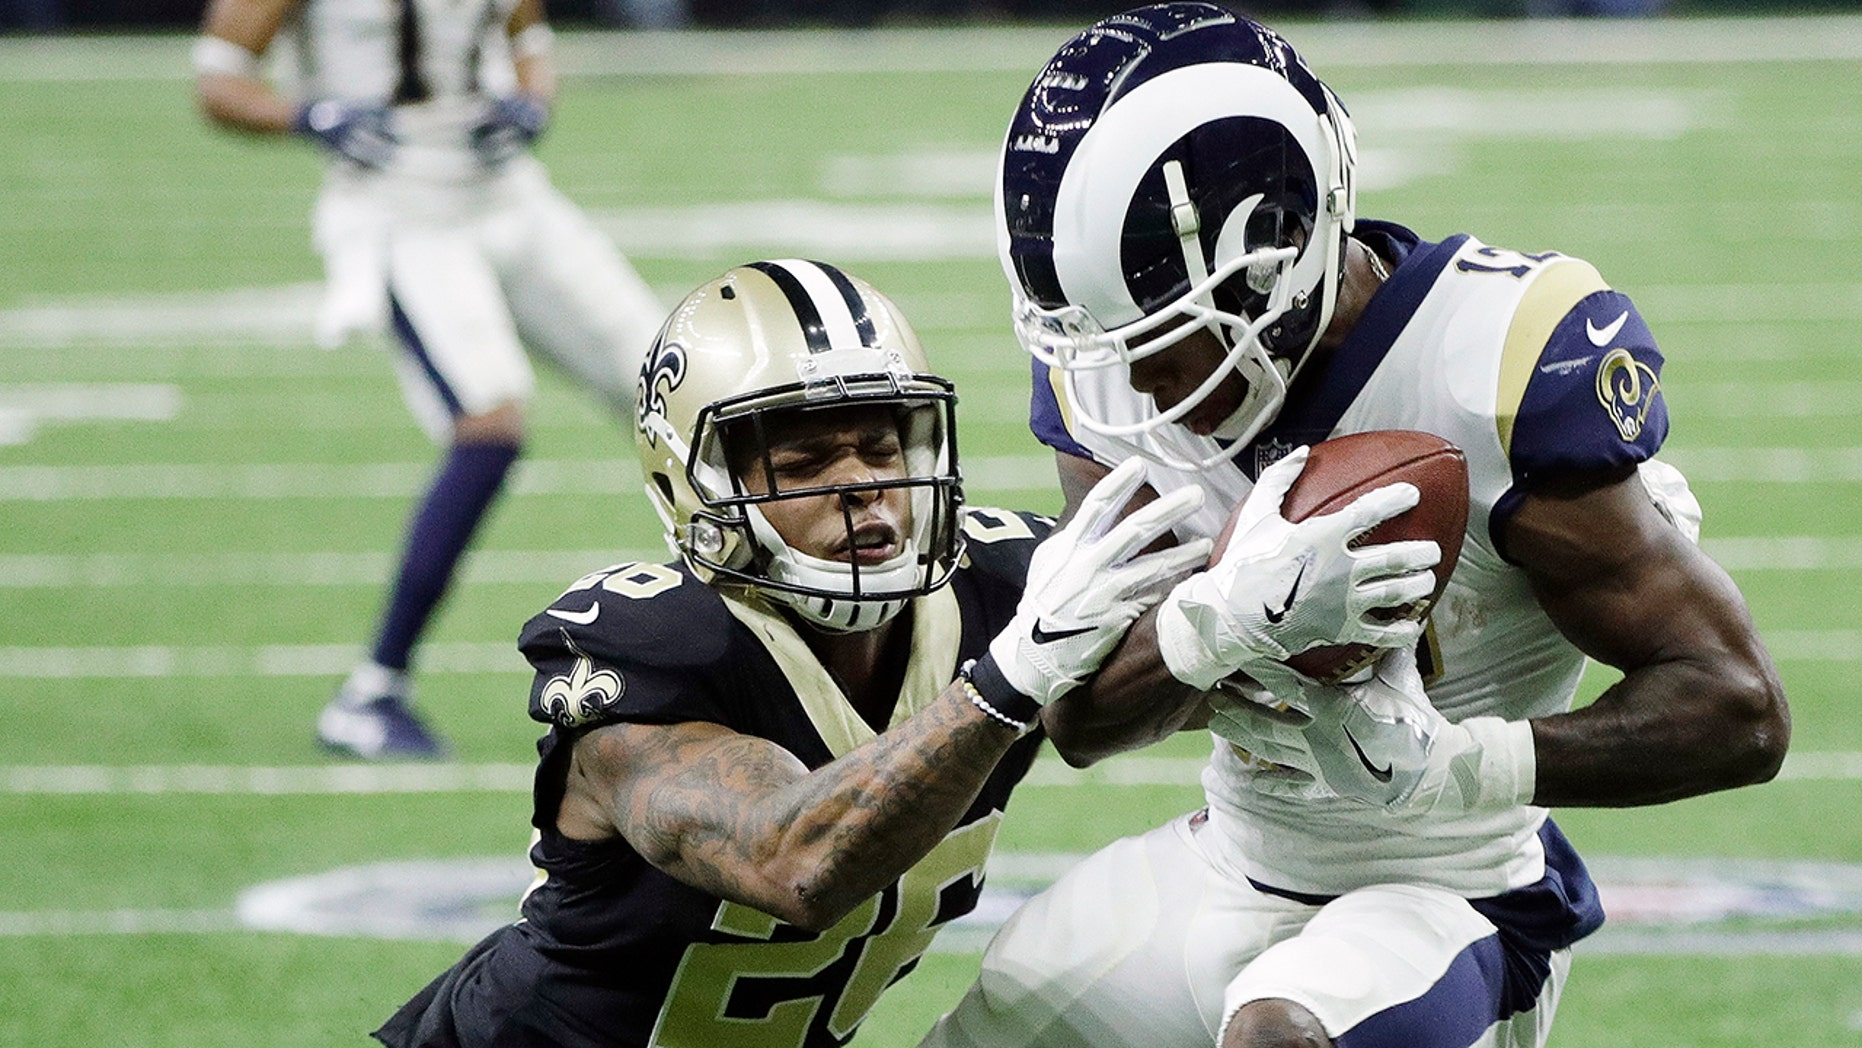 Los Angeles Rams' Brandin Cooks catches a pass in front of New Orleans Saints' P.J. Williams during the first half the NFL football NFC championship game, Sunday, Jan. 20, 2019, in New Orleans.